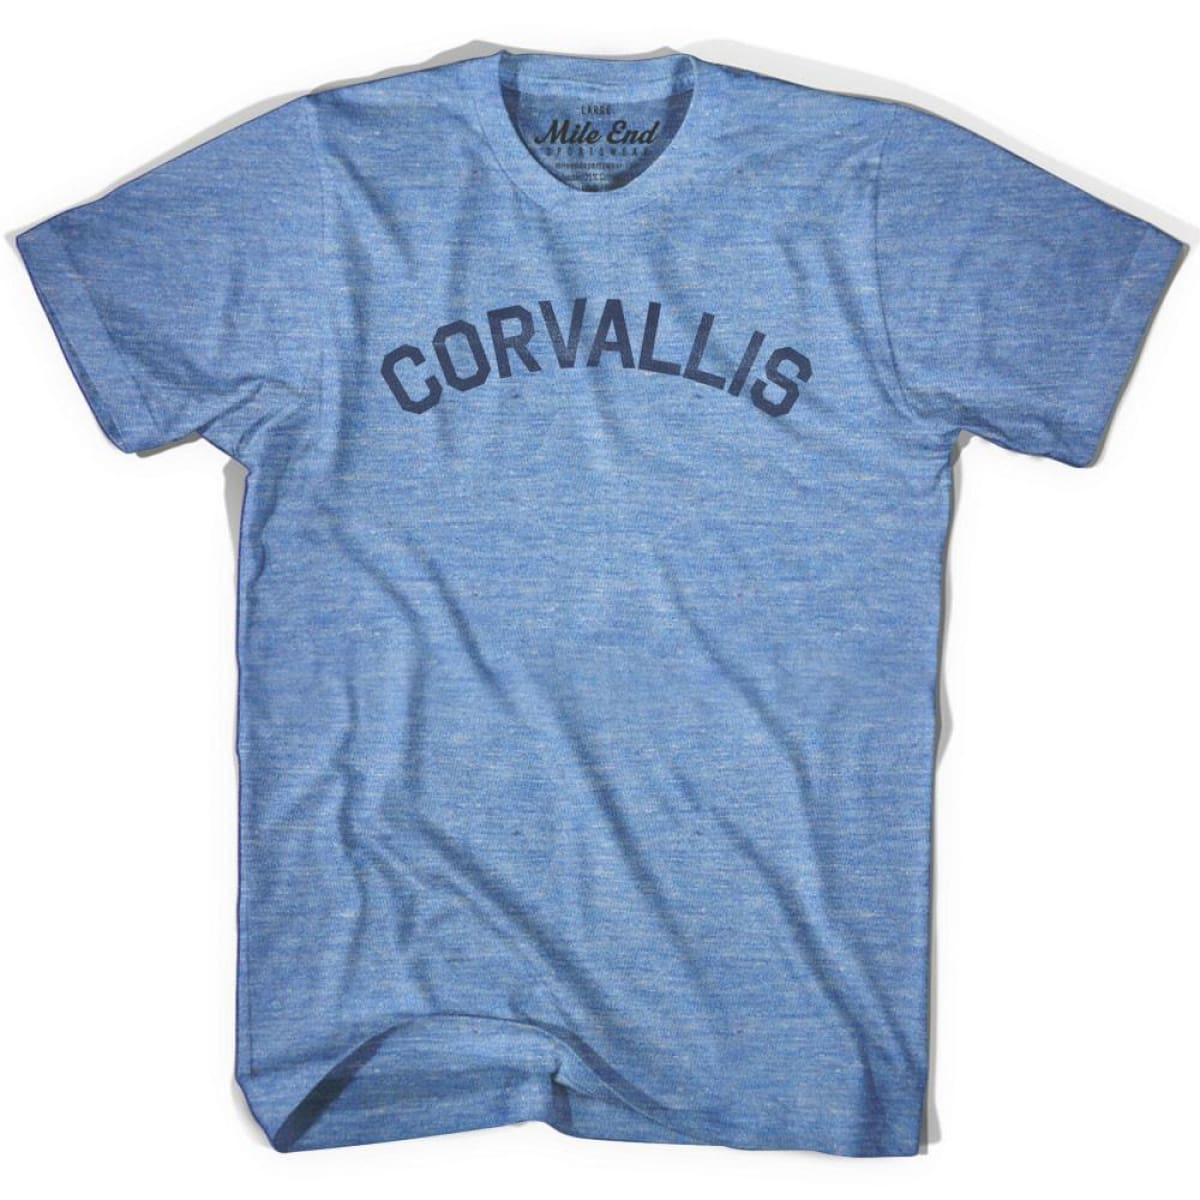 Corvallis City T-shirt - Athletic Blue / Adult X-Small - Mile End City